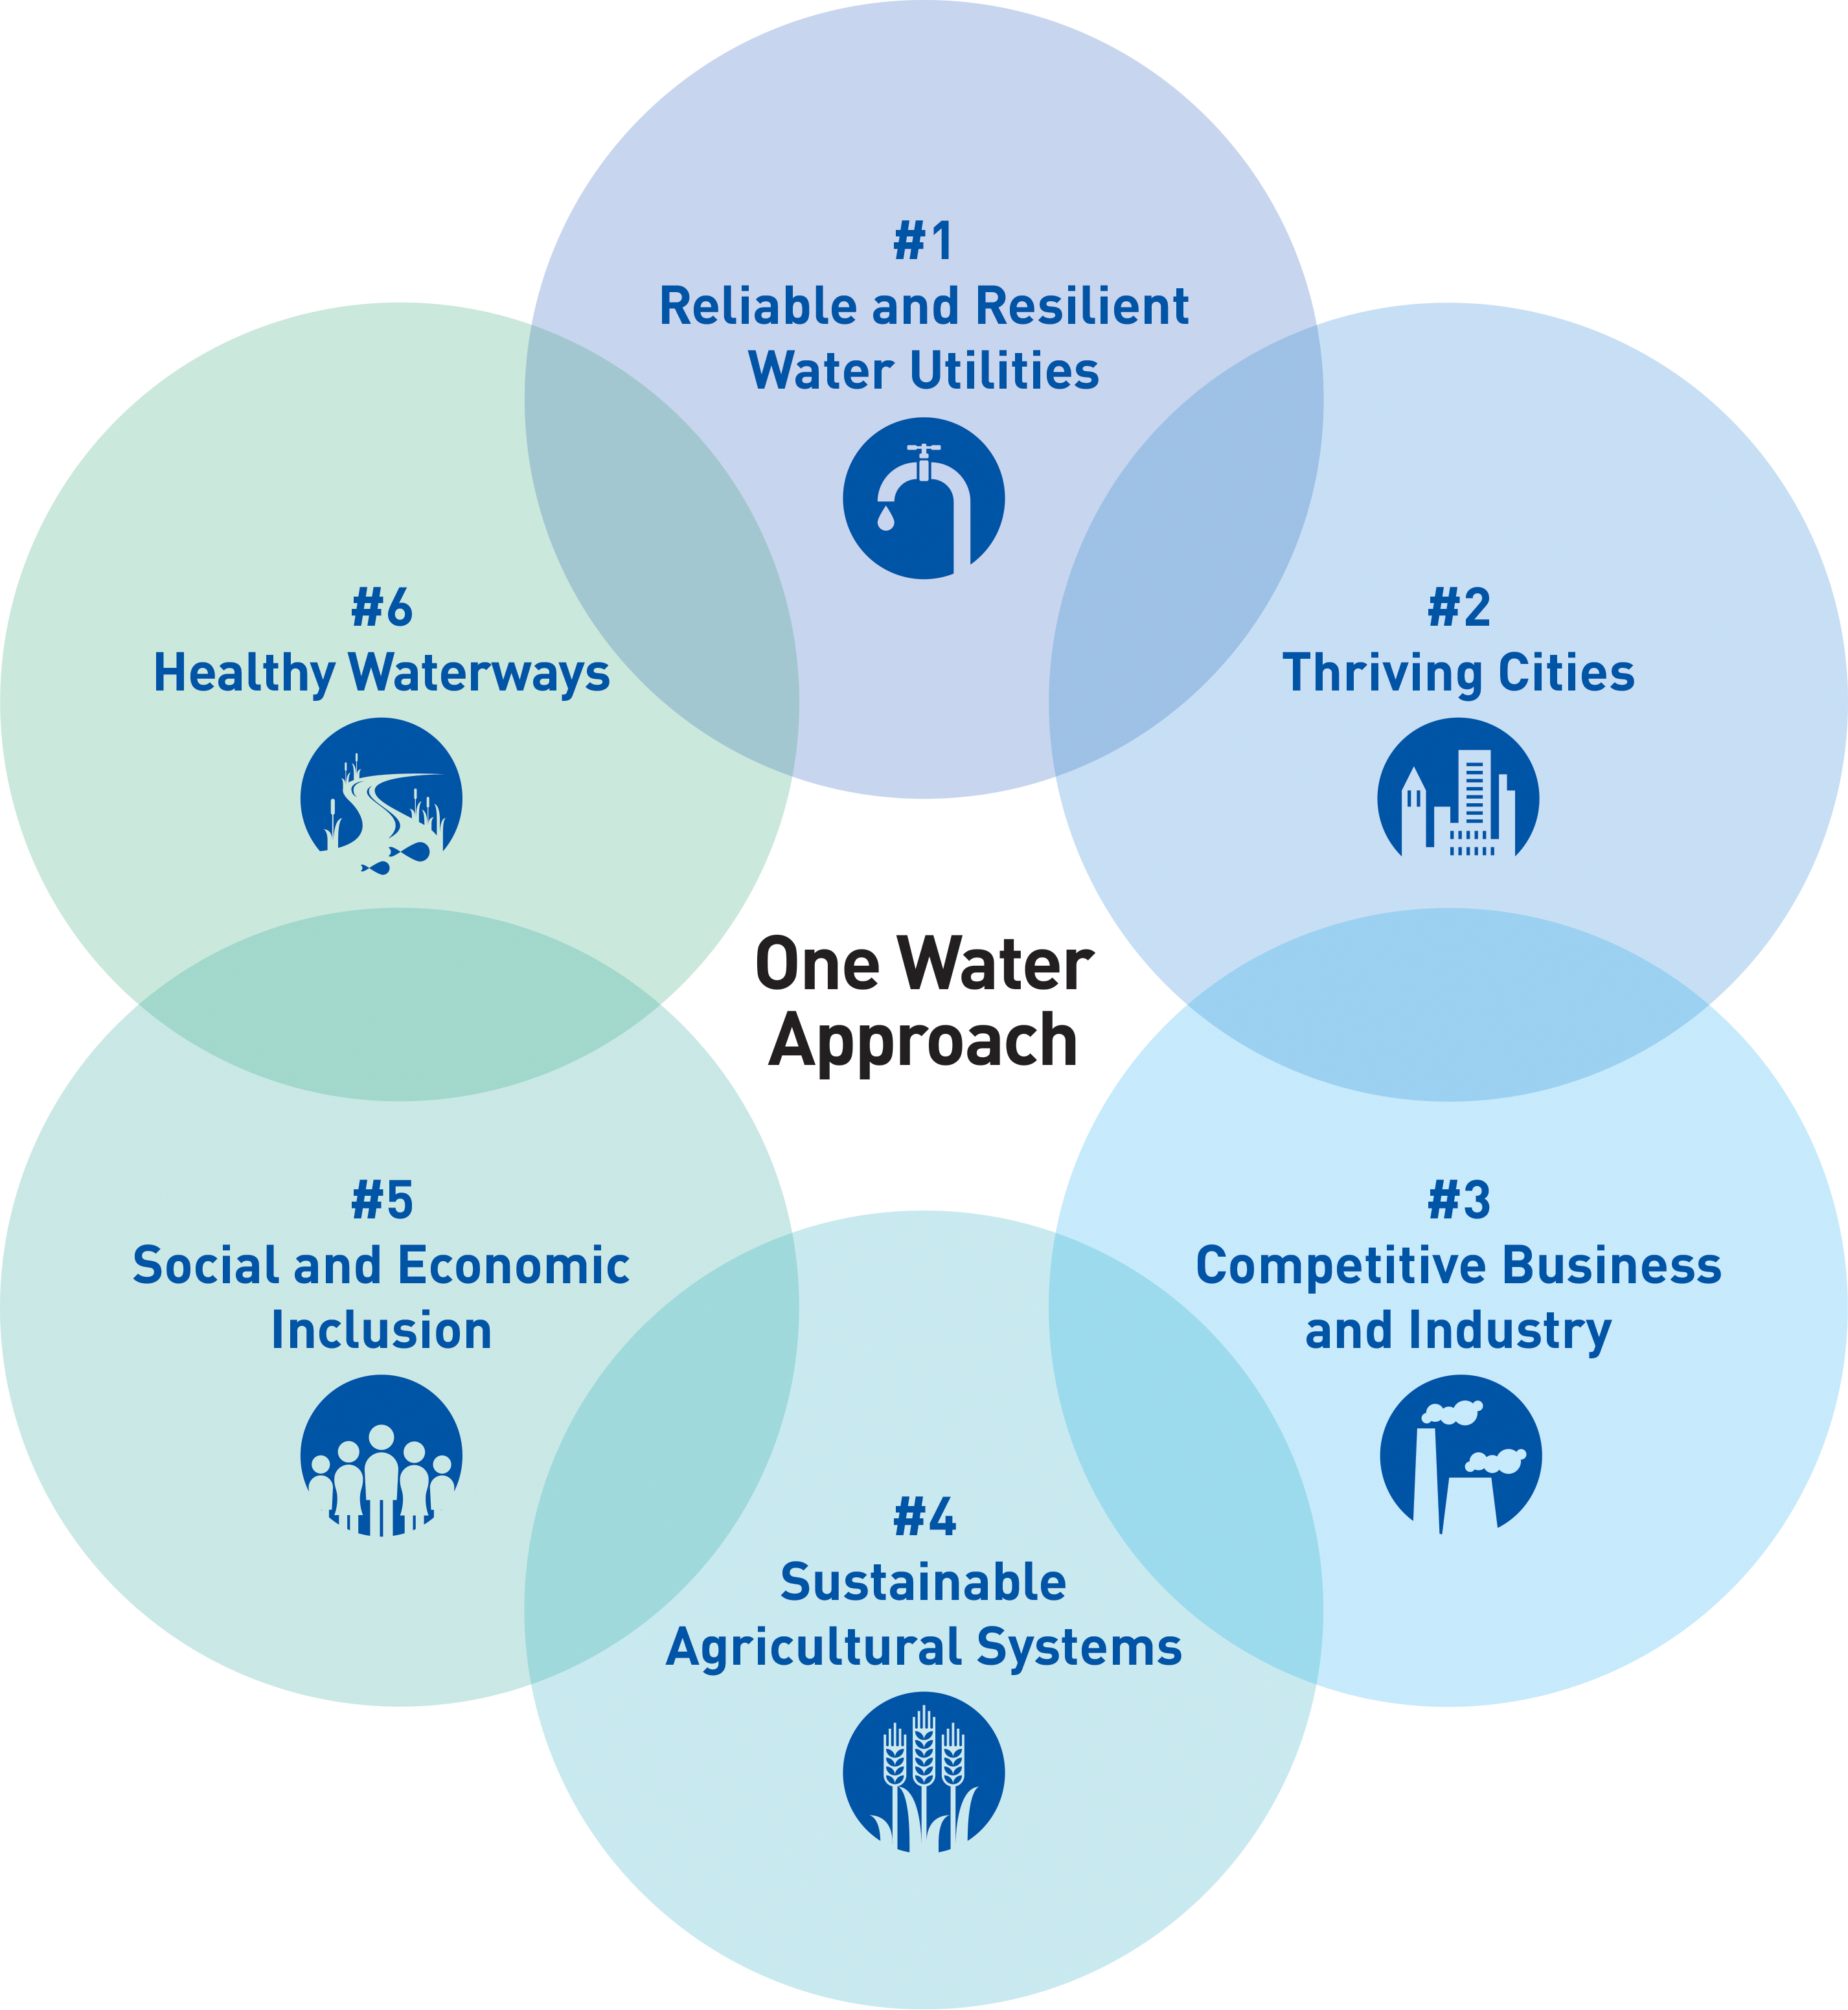 Illustration of the One Water approach that involves complex and interwoven solutions with many partners across jurisdictions. Image courtesy of the US Water Alliance. Solutions within the image include 'Reliable and Resilient Water Utilities,' 'Thriving Cities,' 'Competitive Business and Industry,' 'Sustainable Agricultural Systems,' 'Social and Economic Inclusion,' and 'Healthy Waterways.'